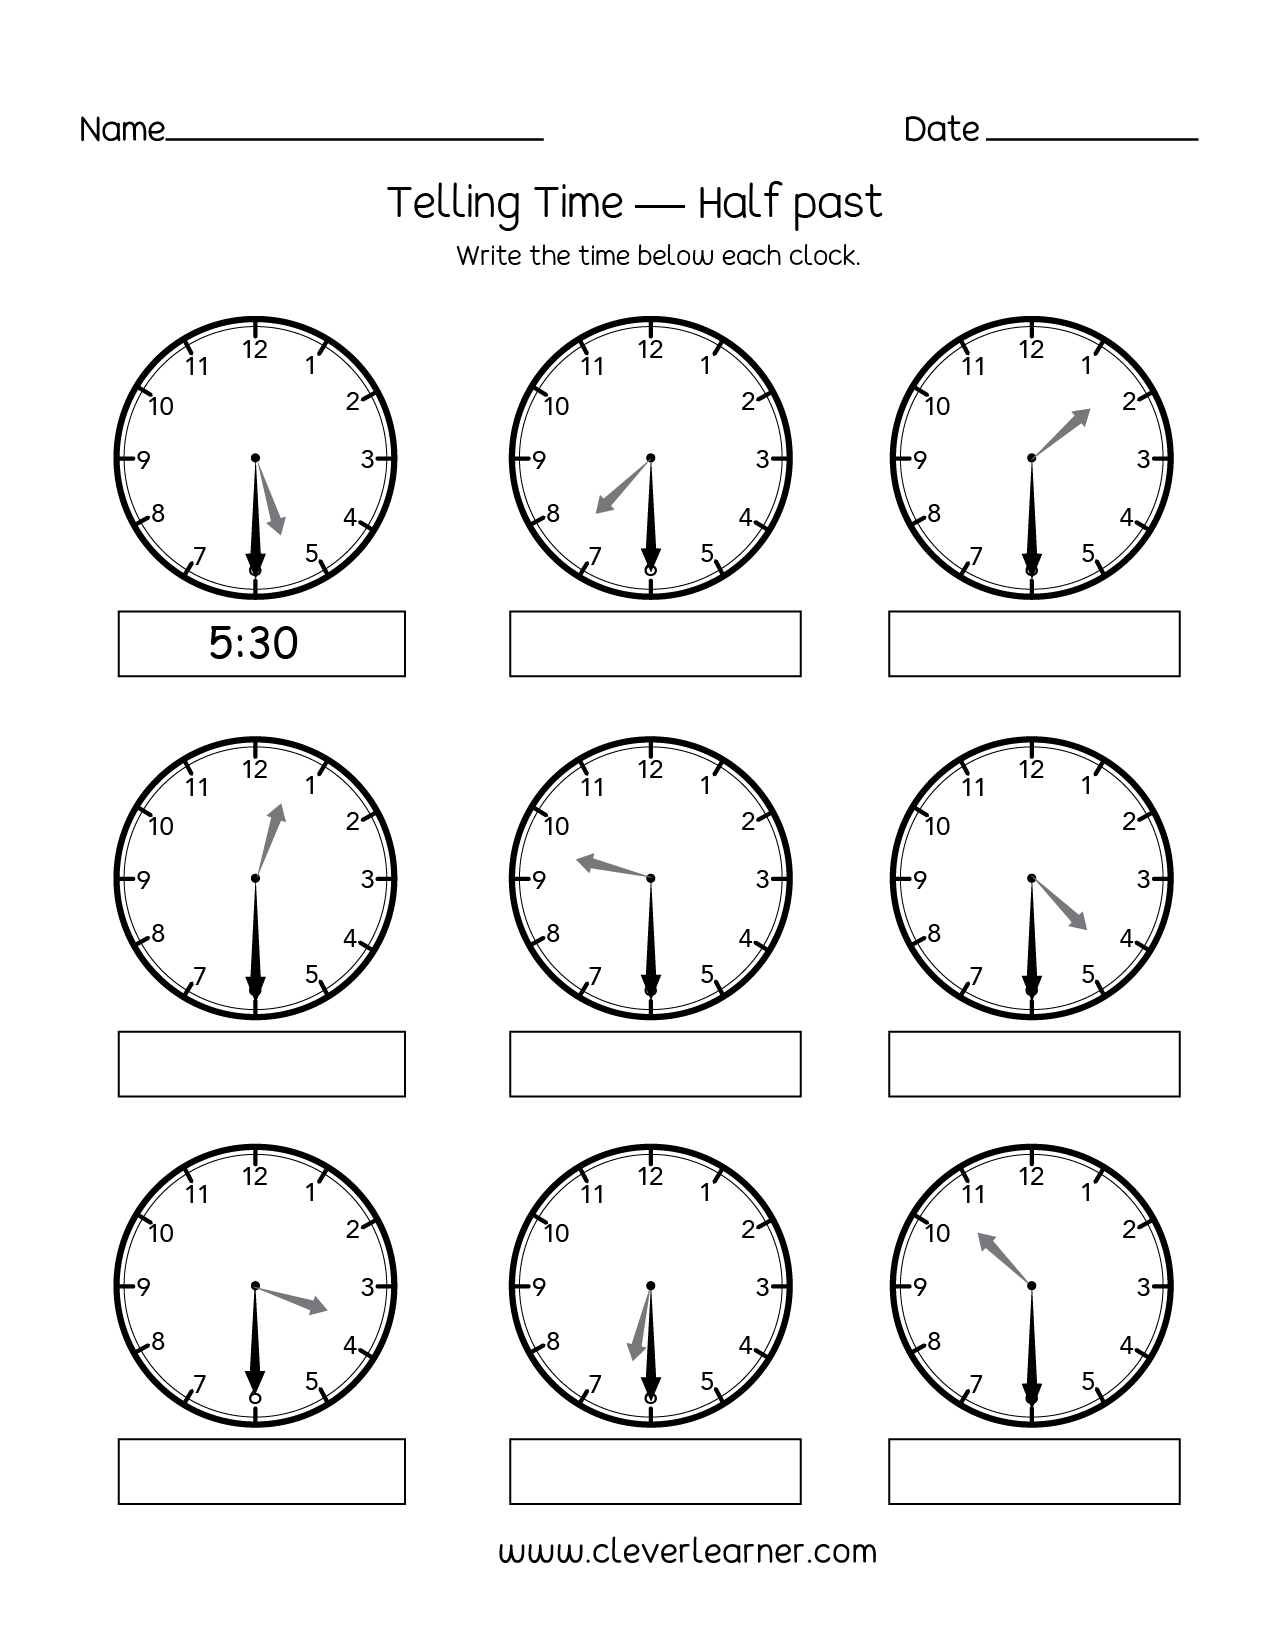 Telling time half past the hour worksheets for 1st and 2nd ...